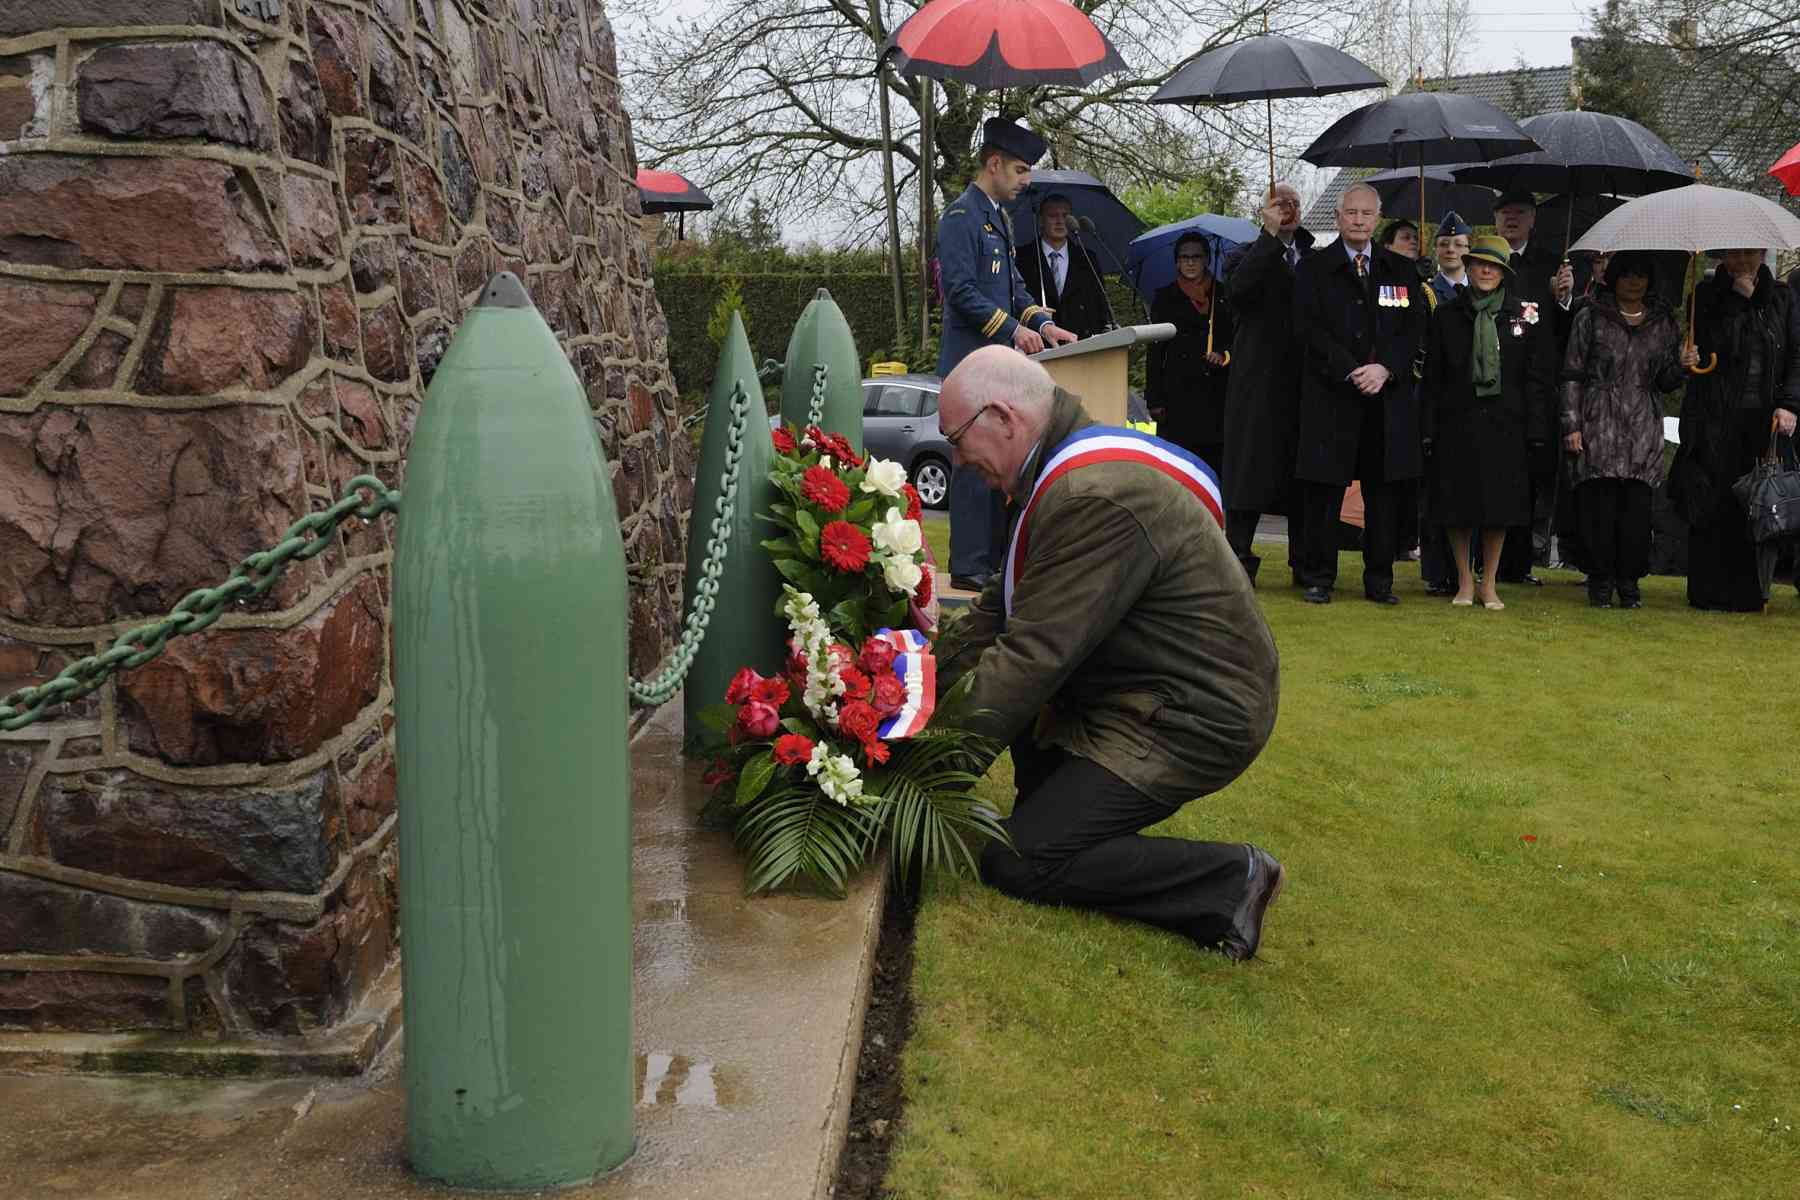 The Mayor of Thelus, Bernard Milleville, also laid a wreath of flowers.